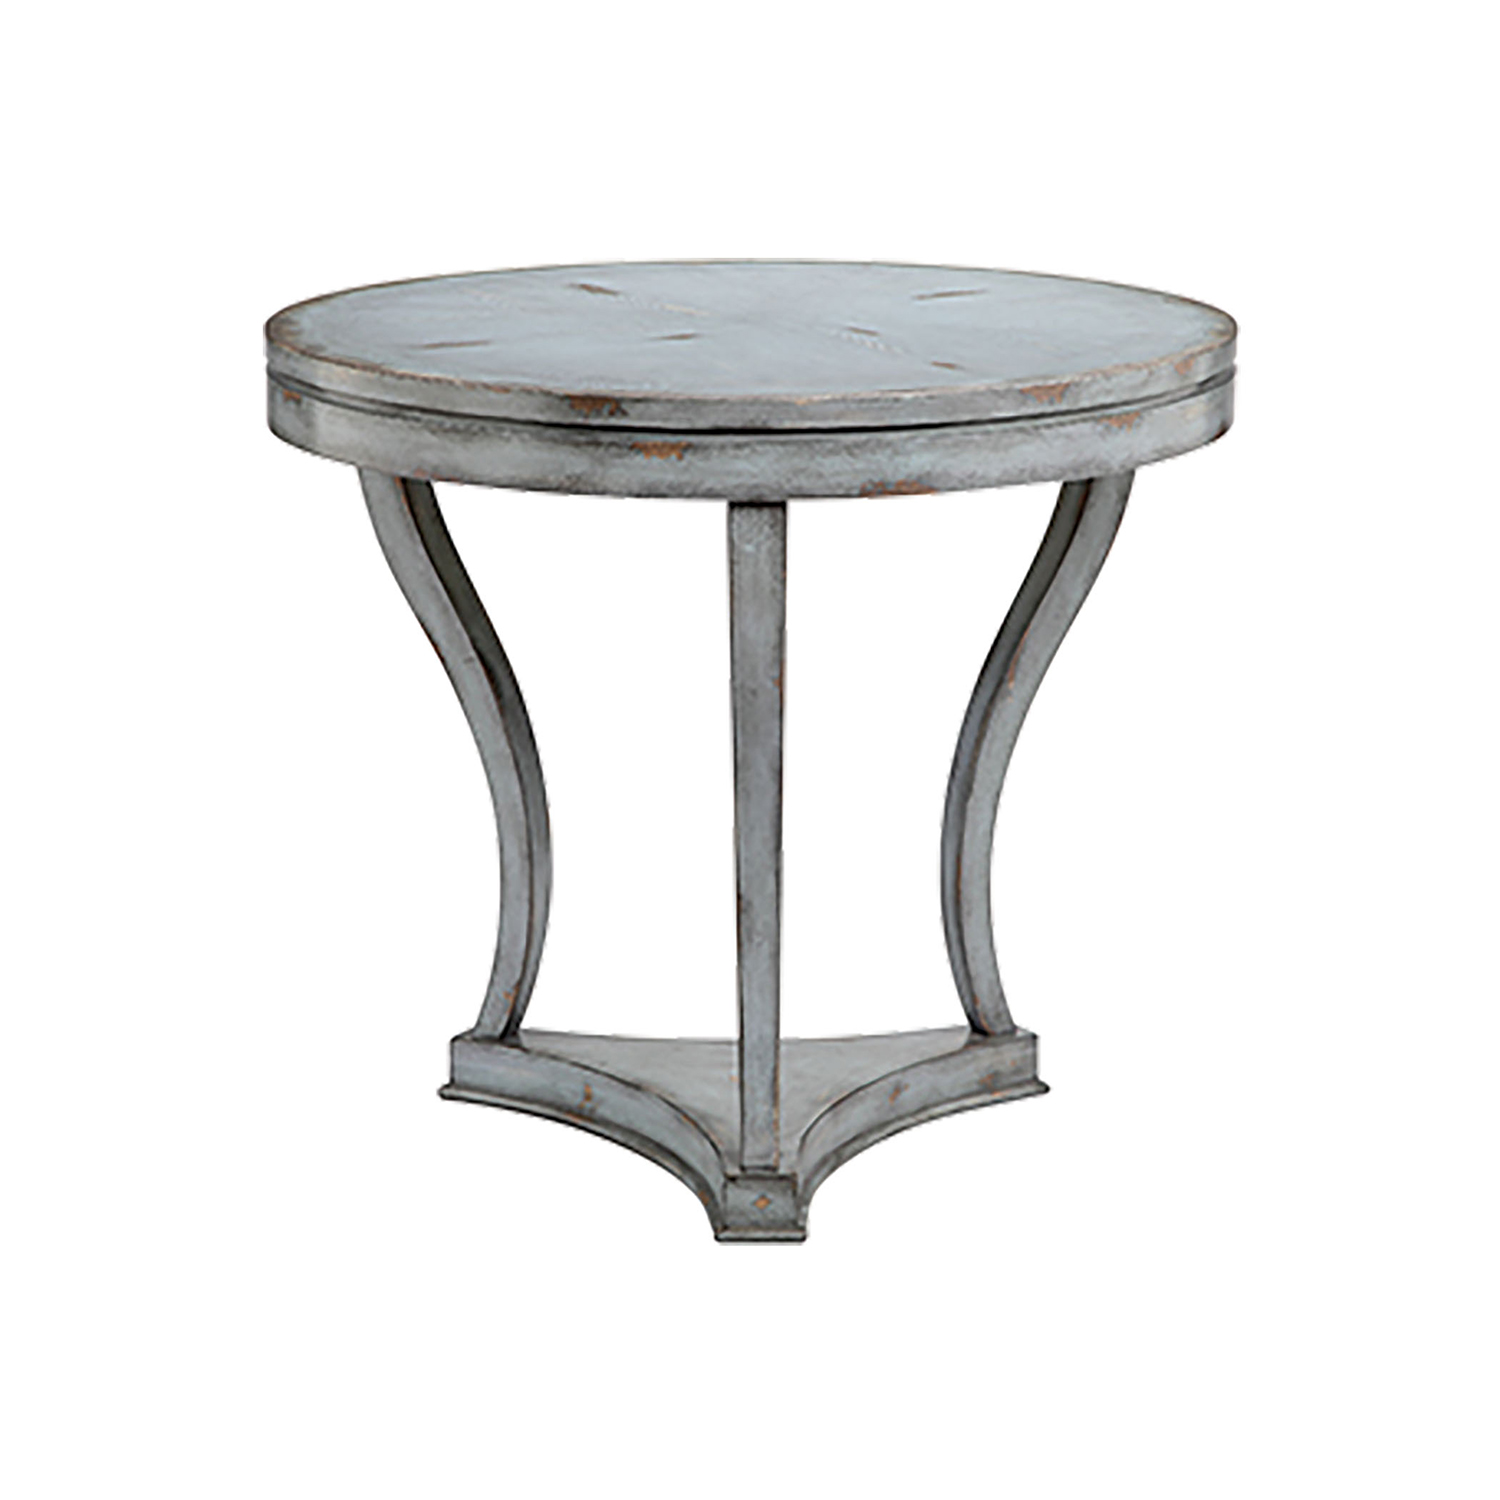 stein world ingalls antique gray and brown accent table bellacor number black marble chairs unique coffee ideas outdoor occasional tables skinny end round metal wood small desk